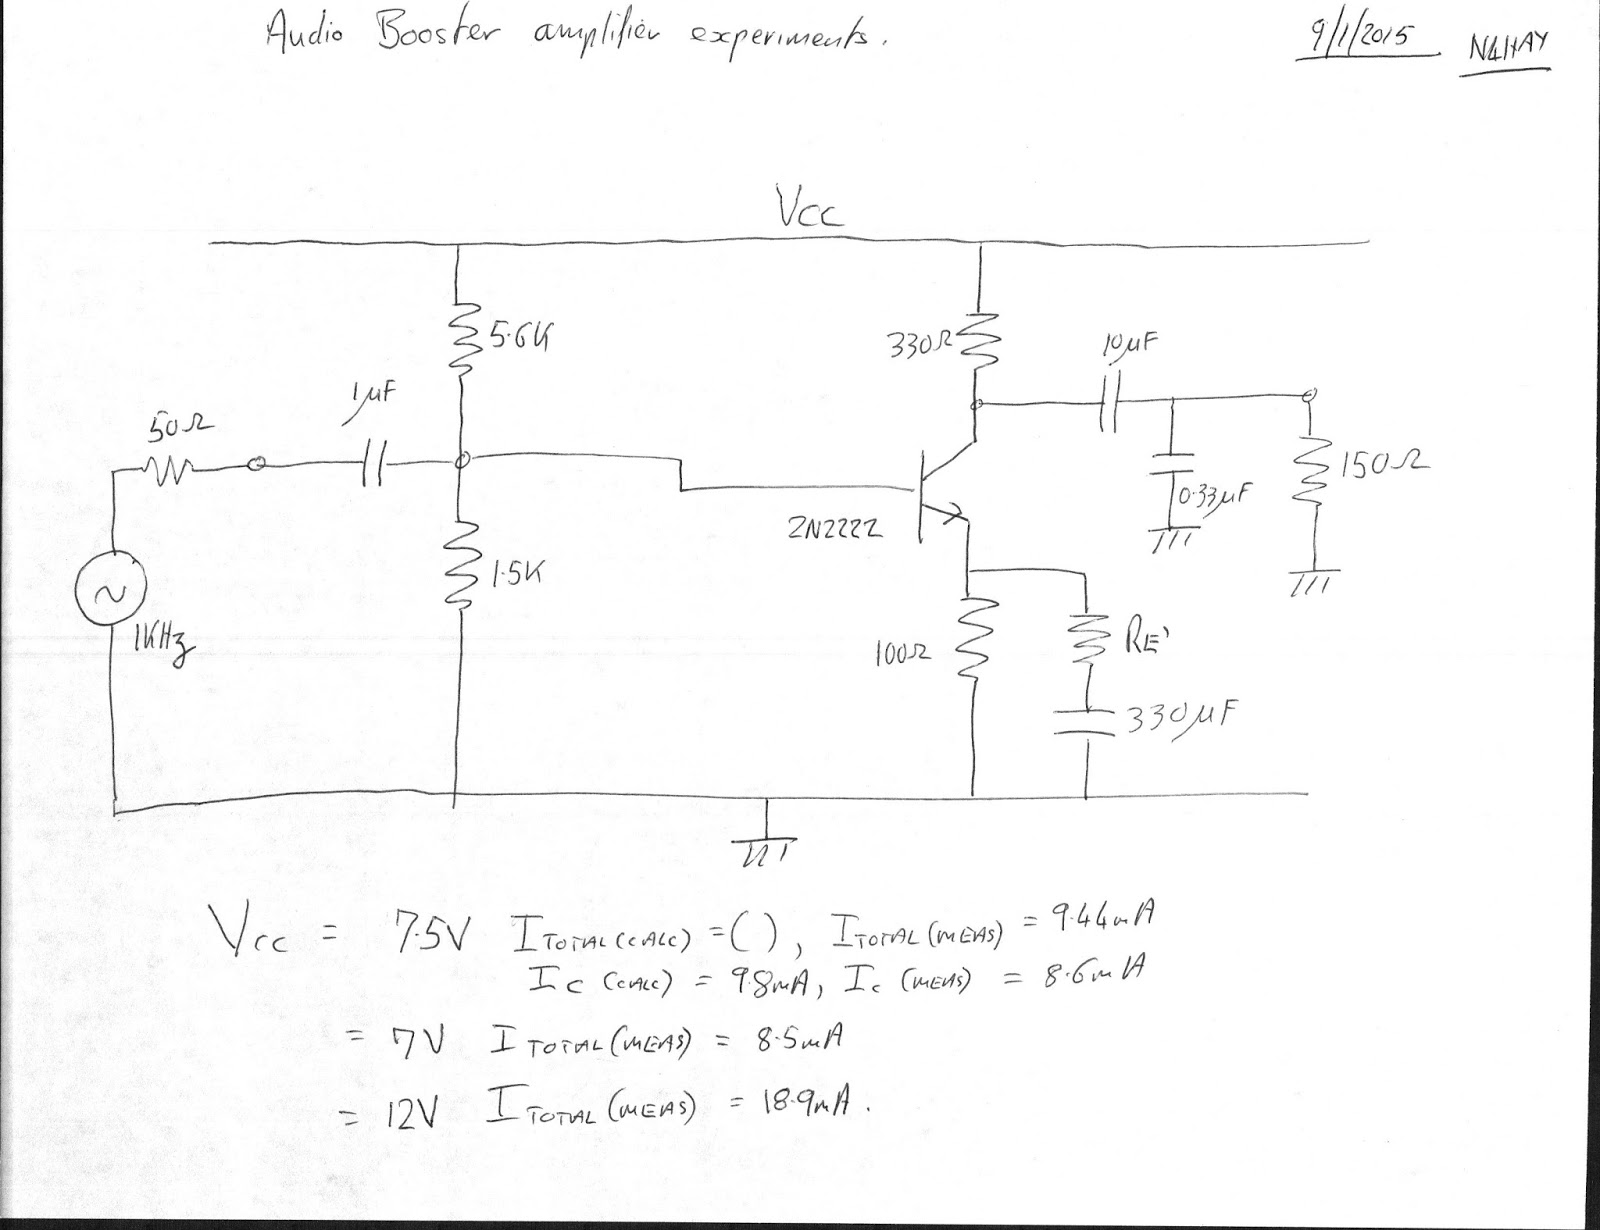 N4hay Zs6rsh David Clark Headphones Amplifier Design 2 Emitter Follower Circuit However At Least 10ma Would Be Needed To Drive The Is This A Zero Sum Game